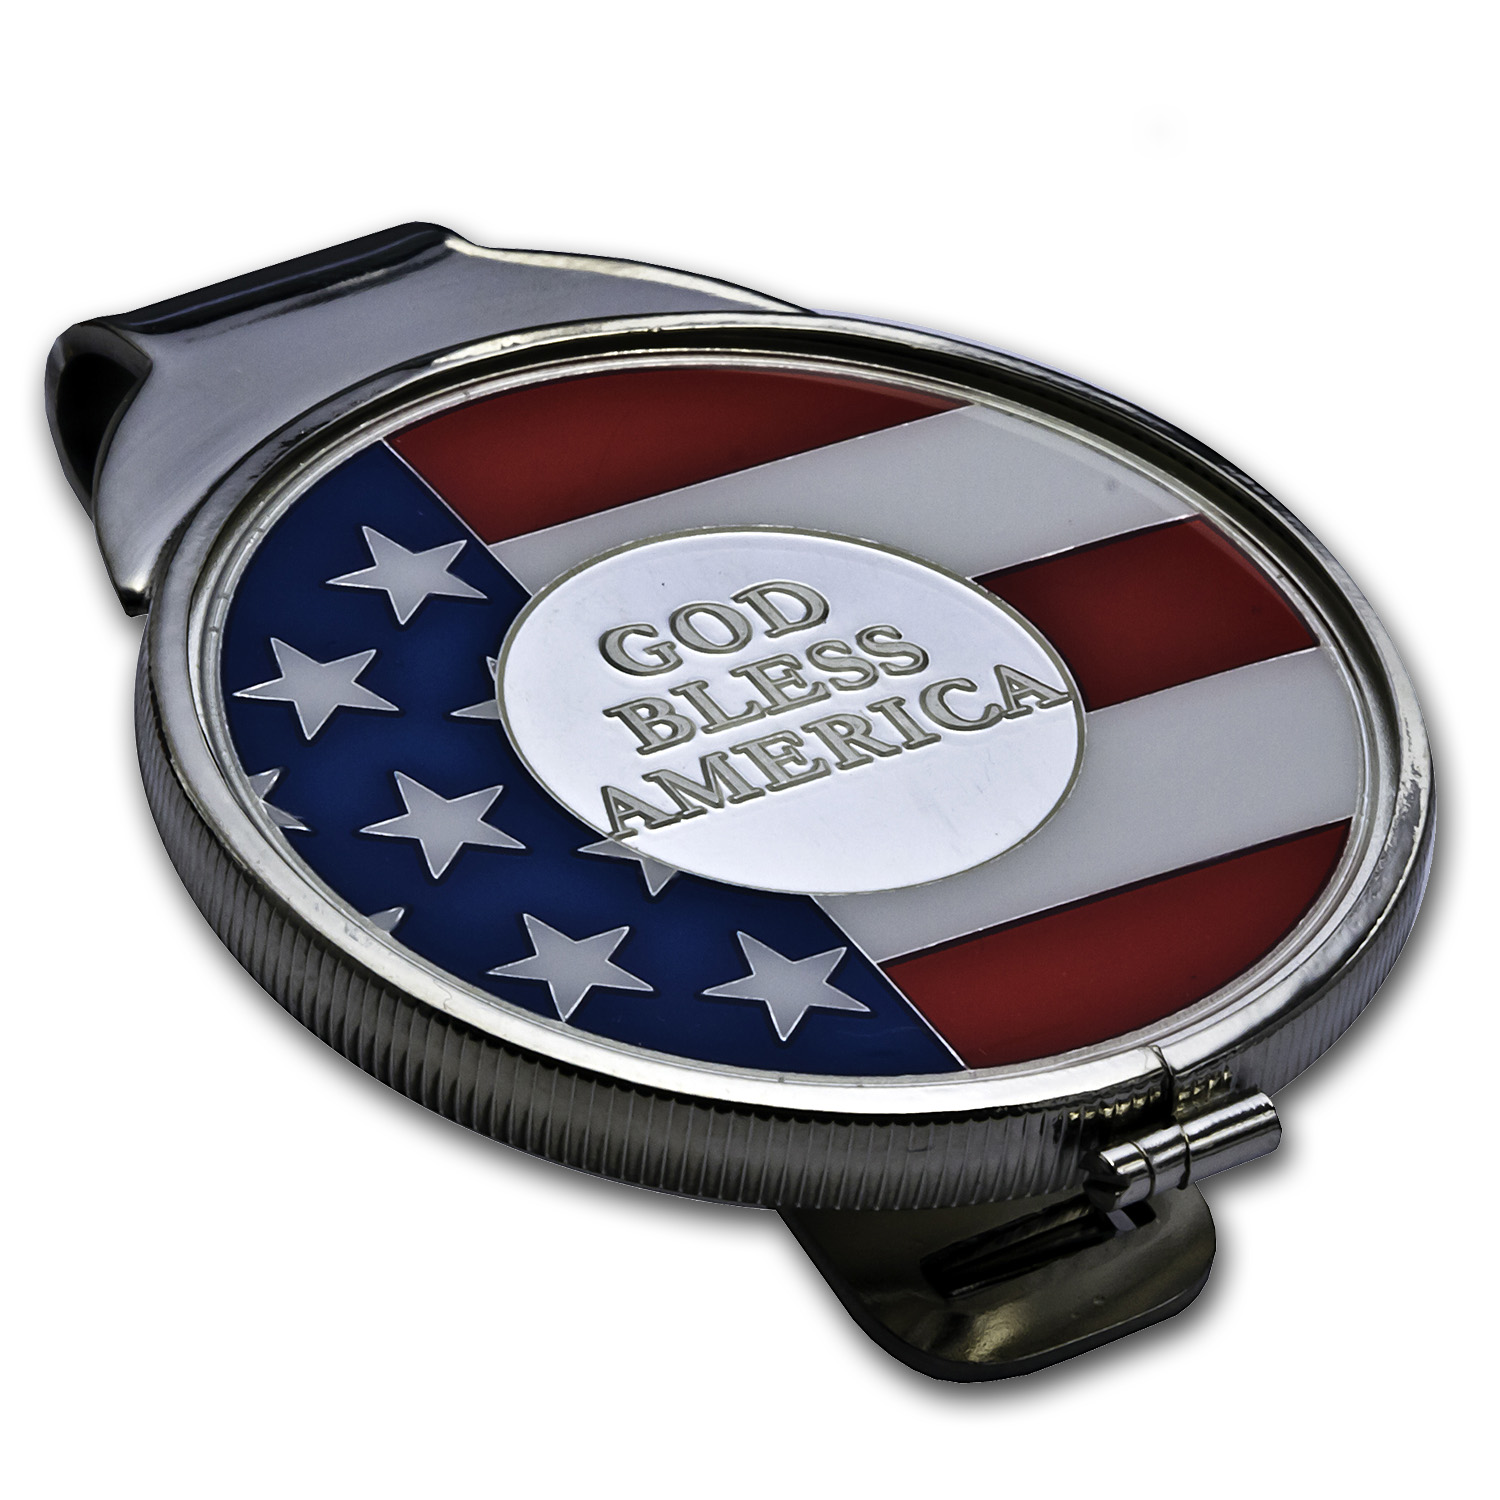 God Bless America Enameled Silver Round - Money Clip (Silvertone)